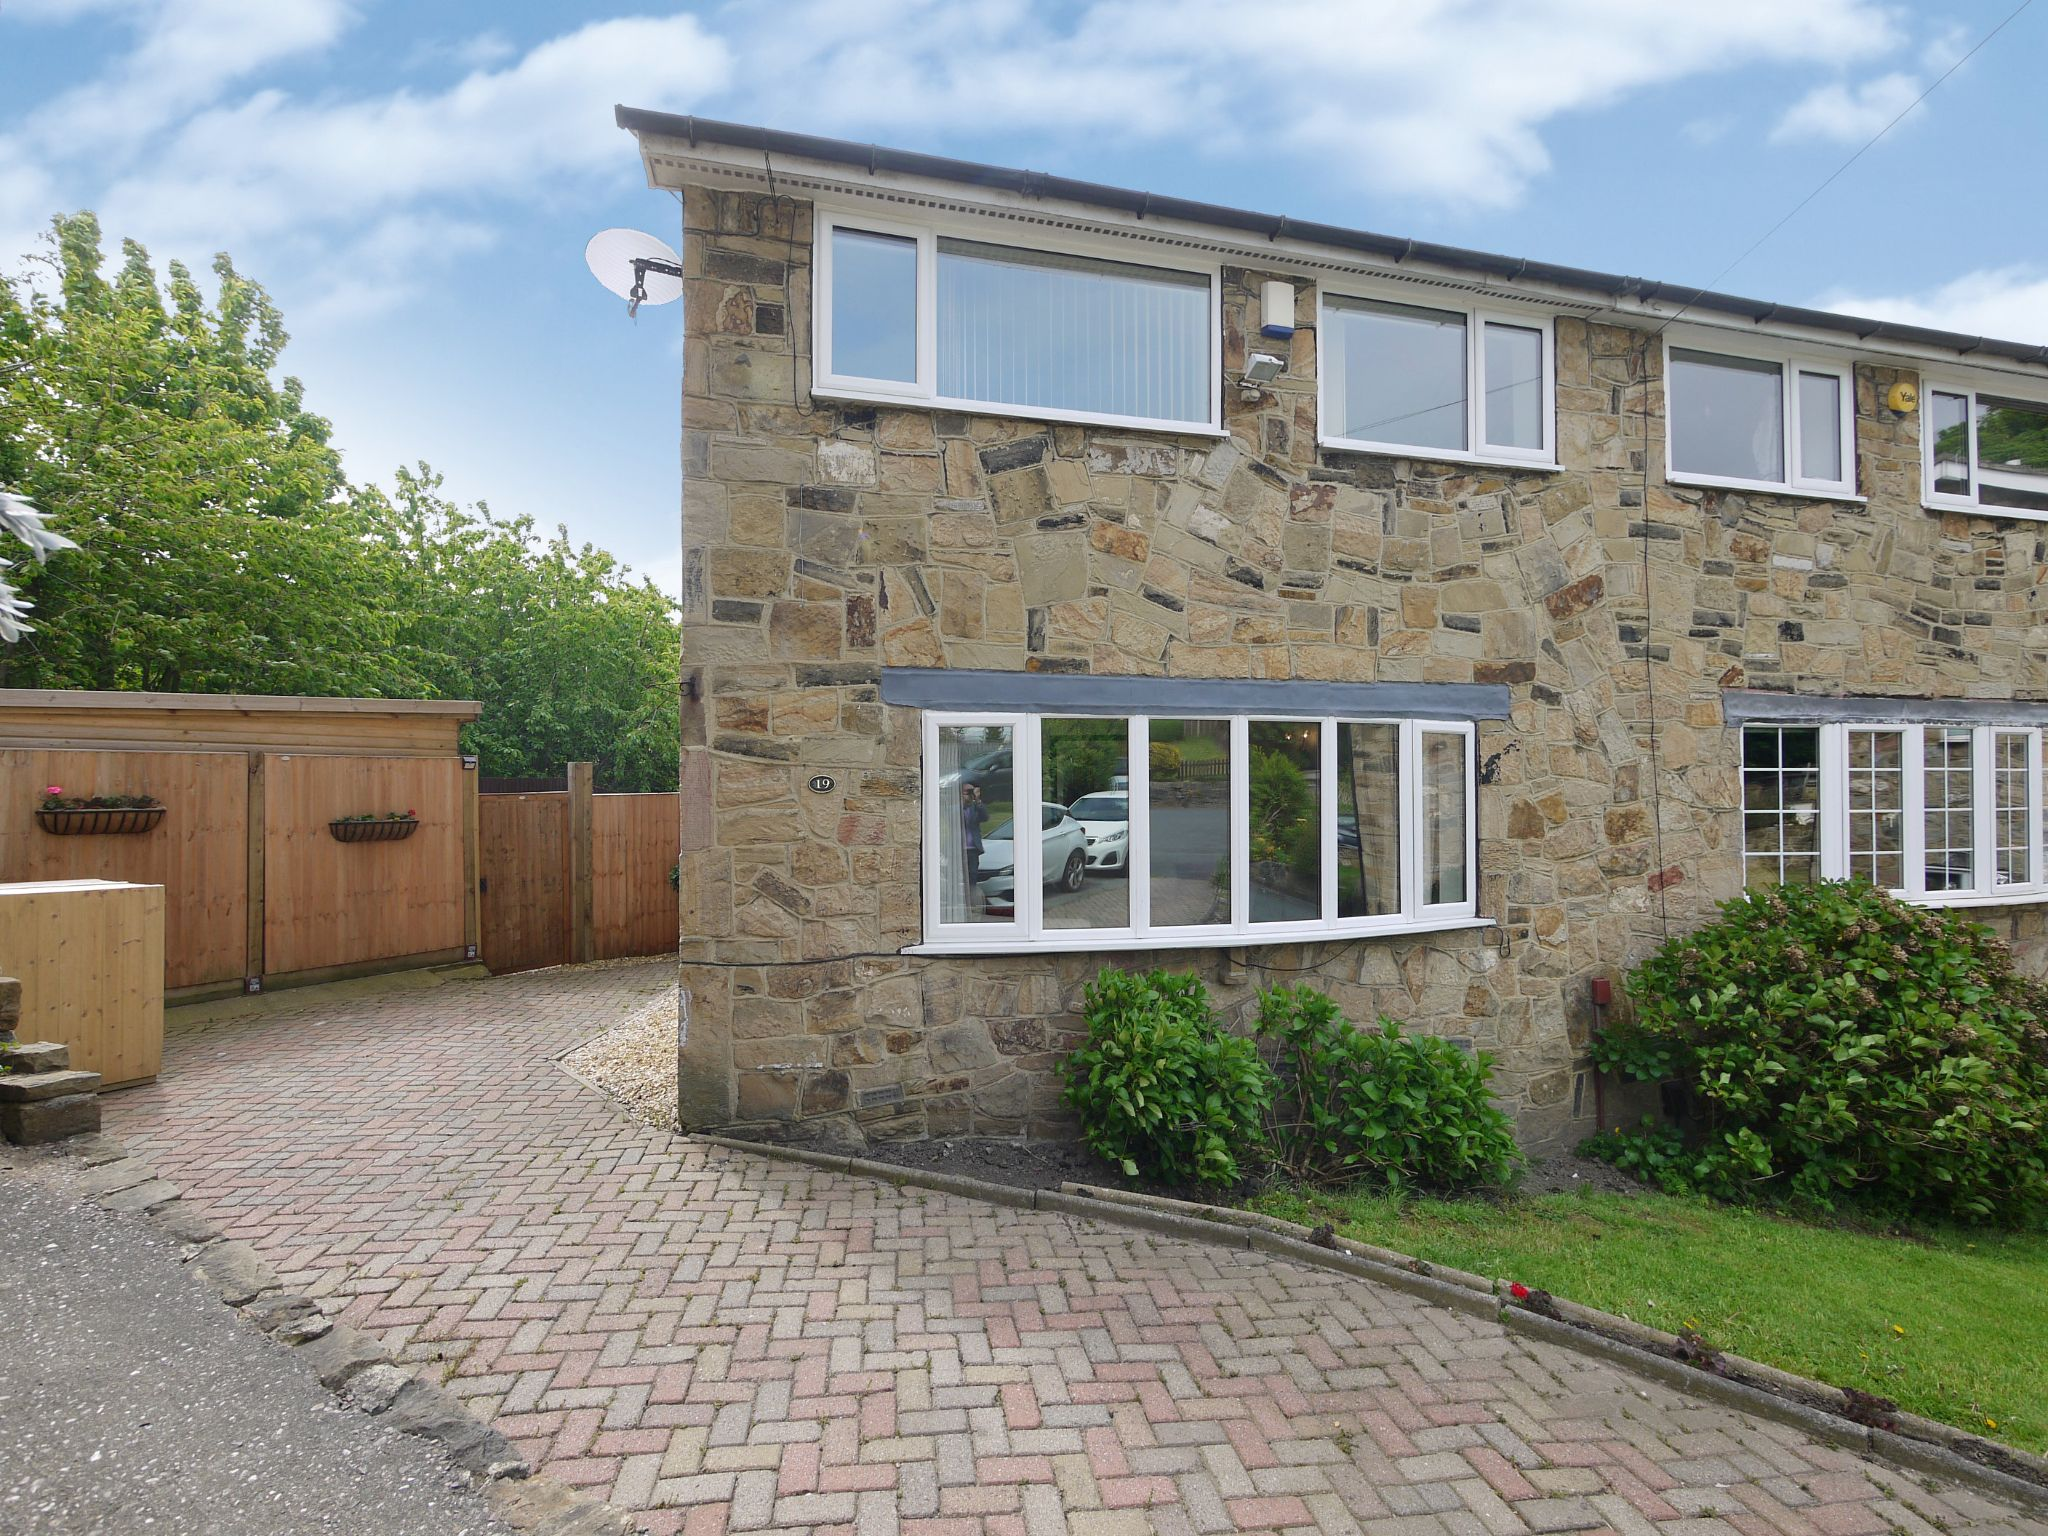 4 bedroom semi-detached house For Sale in Brighouse - Main.